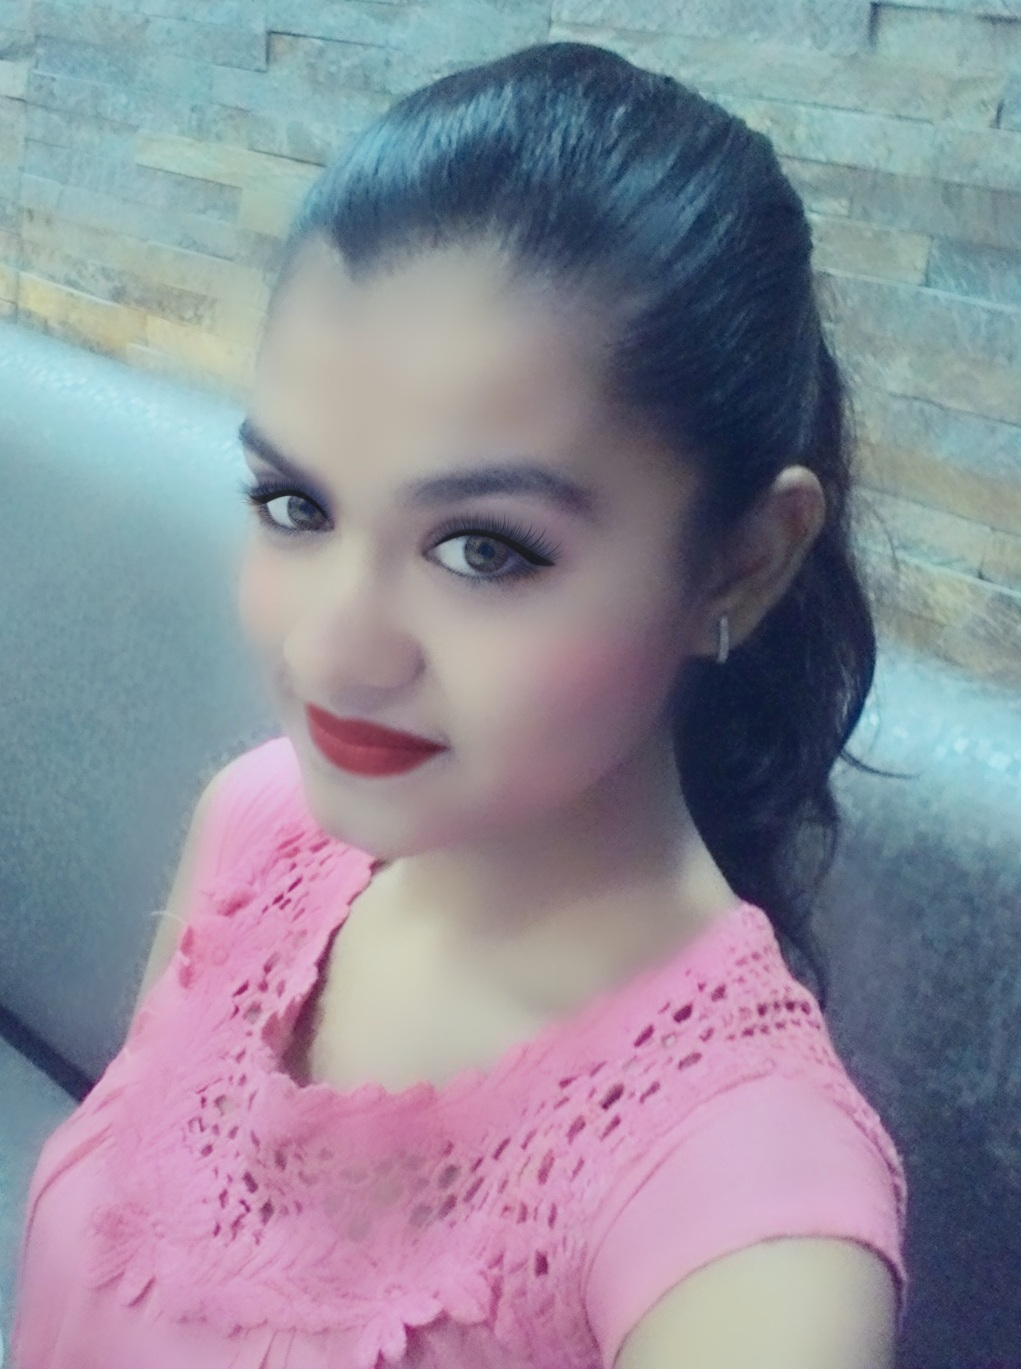 Apoorva Maheshwari Popularly Known As Seraphic Apoorva Is An Indian Teenage Girl Her Make Up Tutorials And Songs On Youtube Are Loved By People